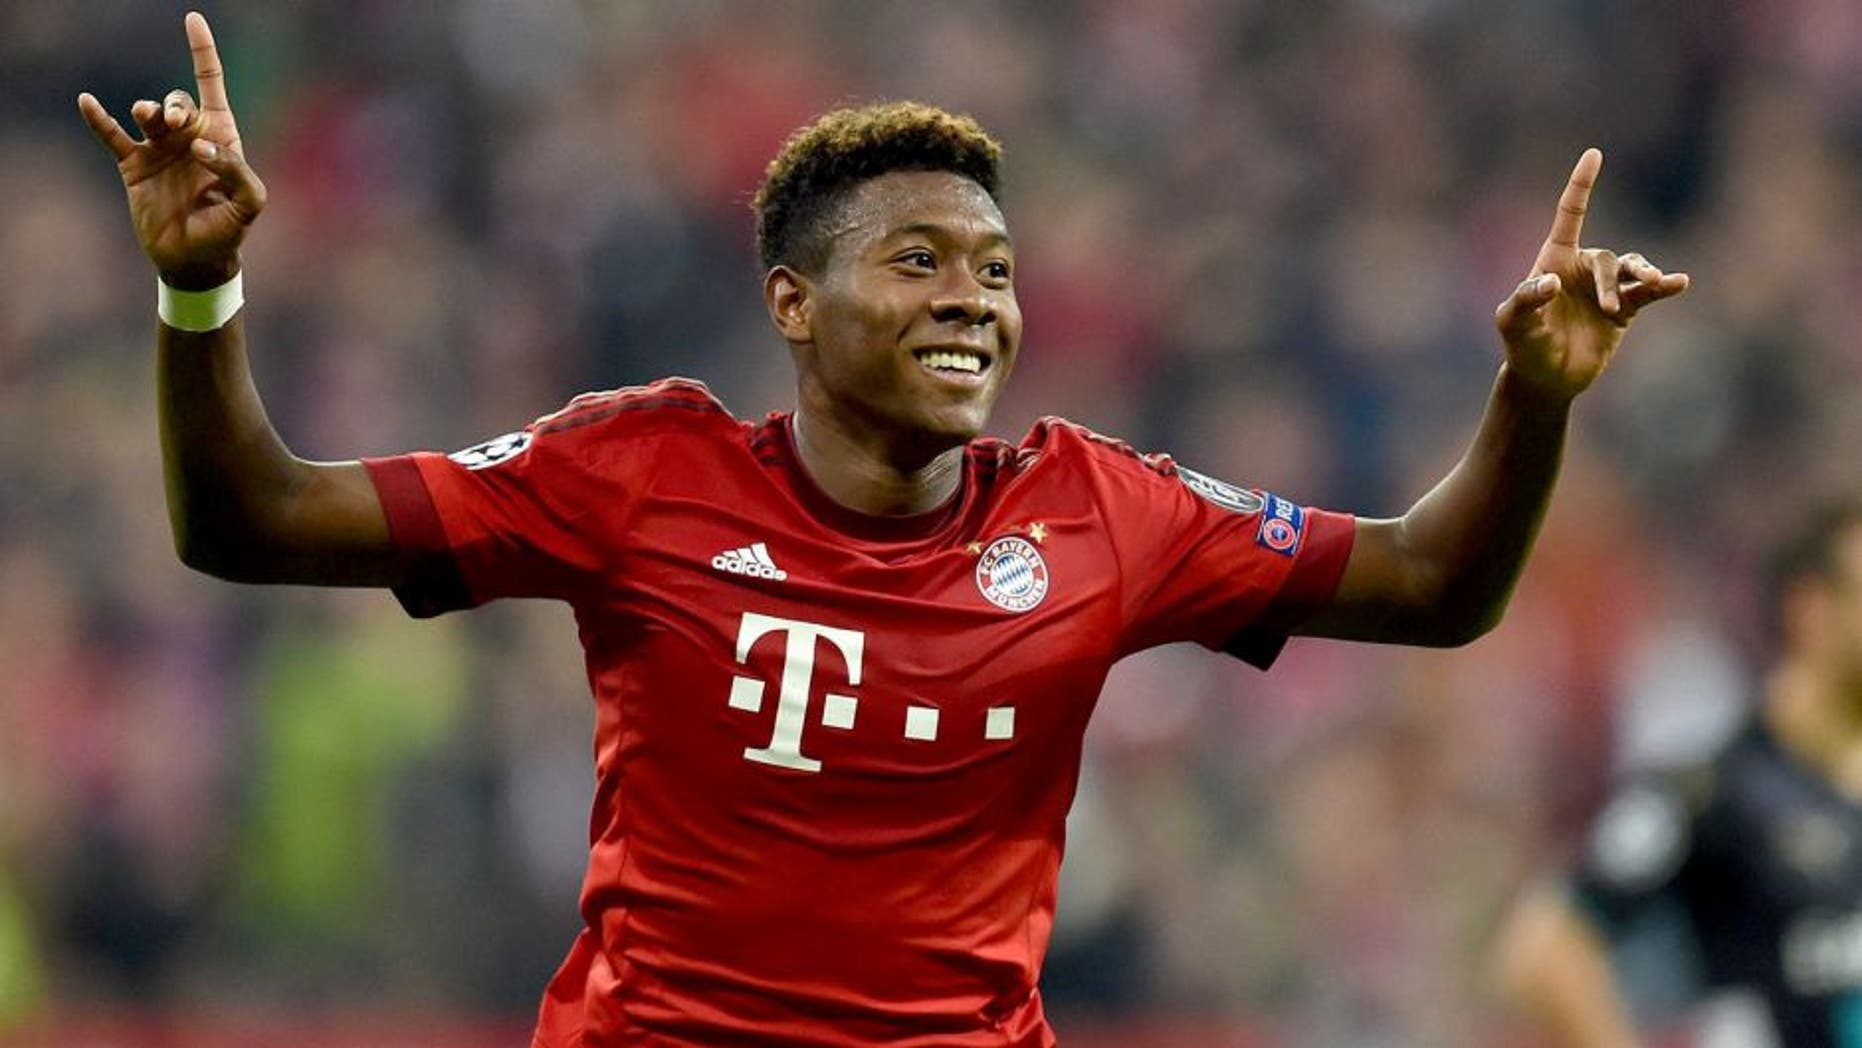 Bayern Munich's Austrian defender David Alaba celebrates after scoring the third goal during the UEFA Champions League Group F second-leg football match between FC Bayern Munich and Arsenal FC in Munich, southern Germany, on November 4, 2015. AFP PHOTO / CHRISTOF STACHE (Photo credit should read CHRISTOF STACHE/AFP/Getty Images)